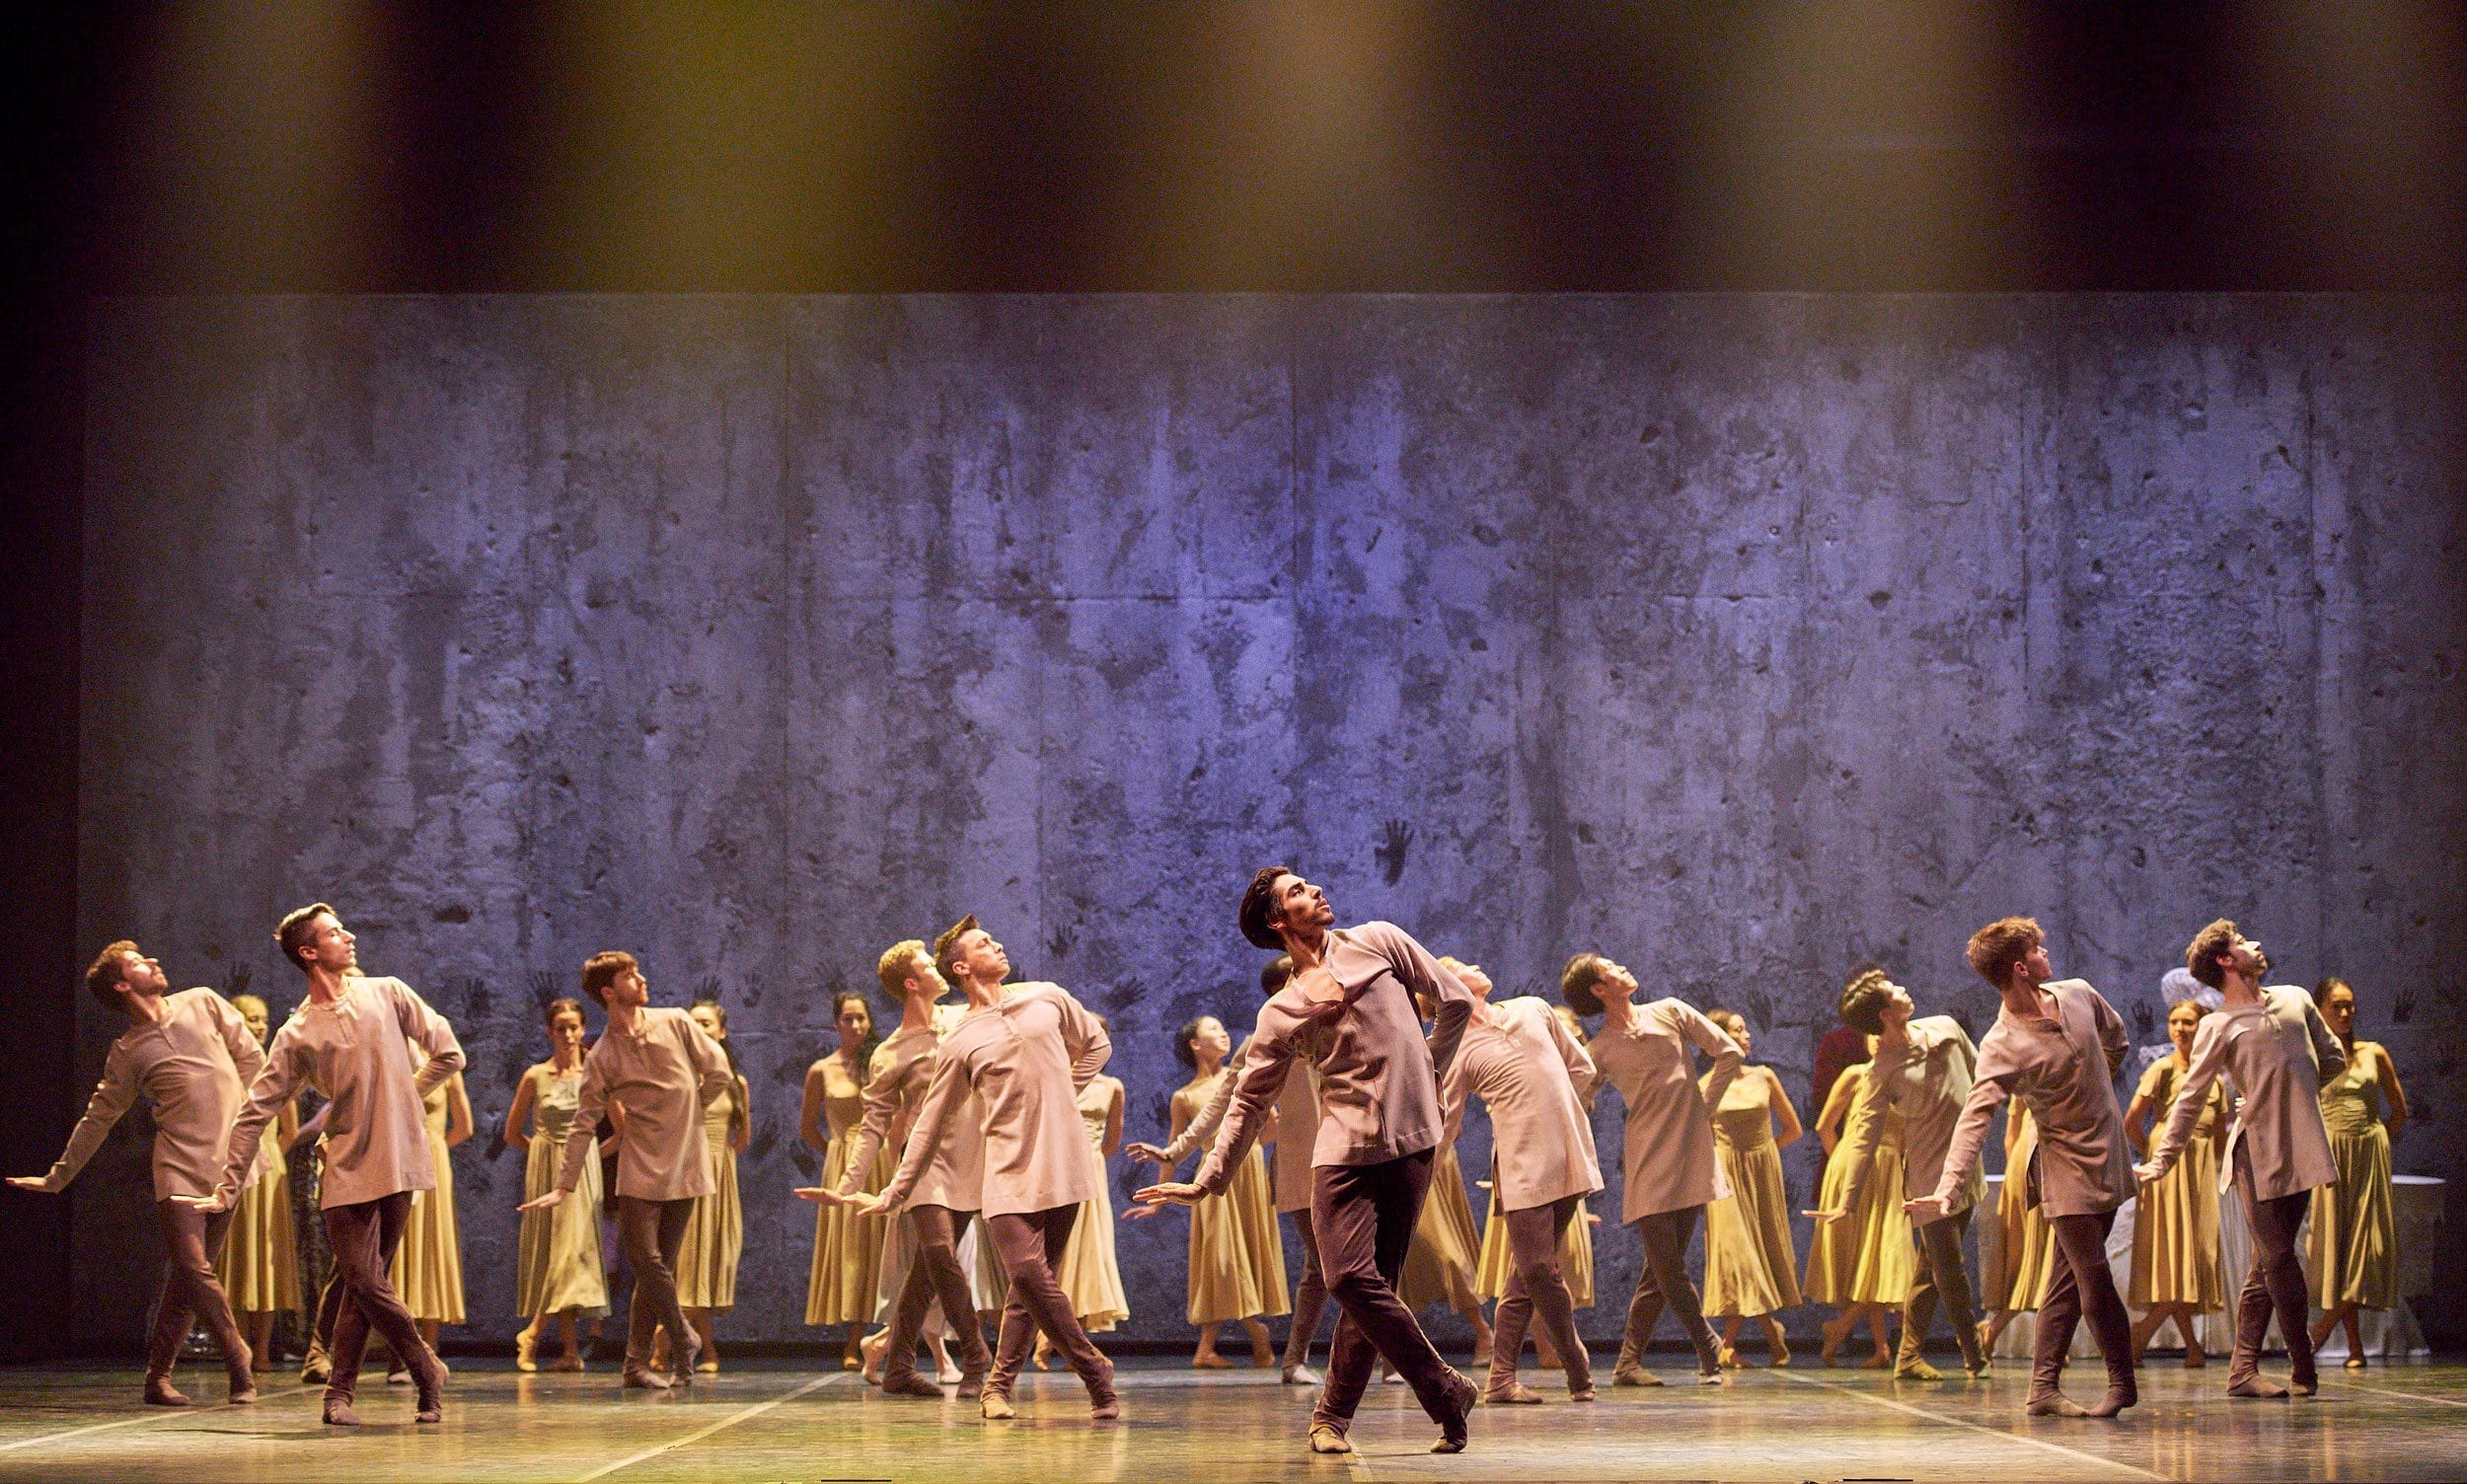 English-National-Ballet-in-Akram-Khan's-Giselle-(c)-Laurent-Liotardo